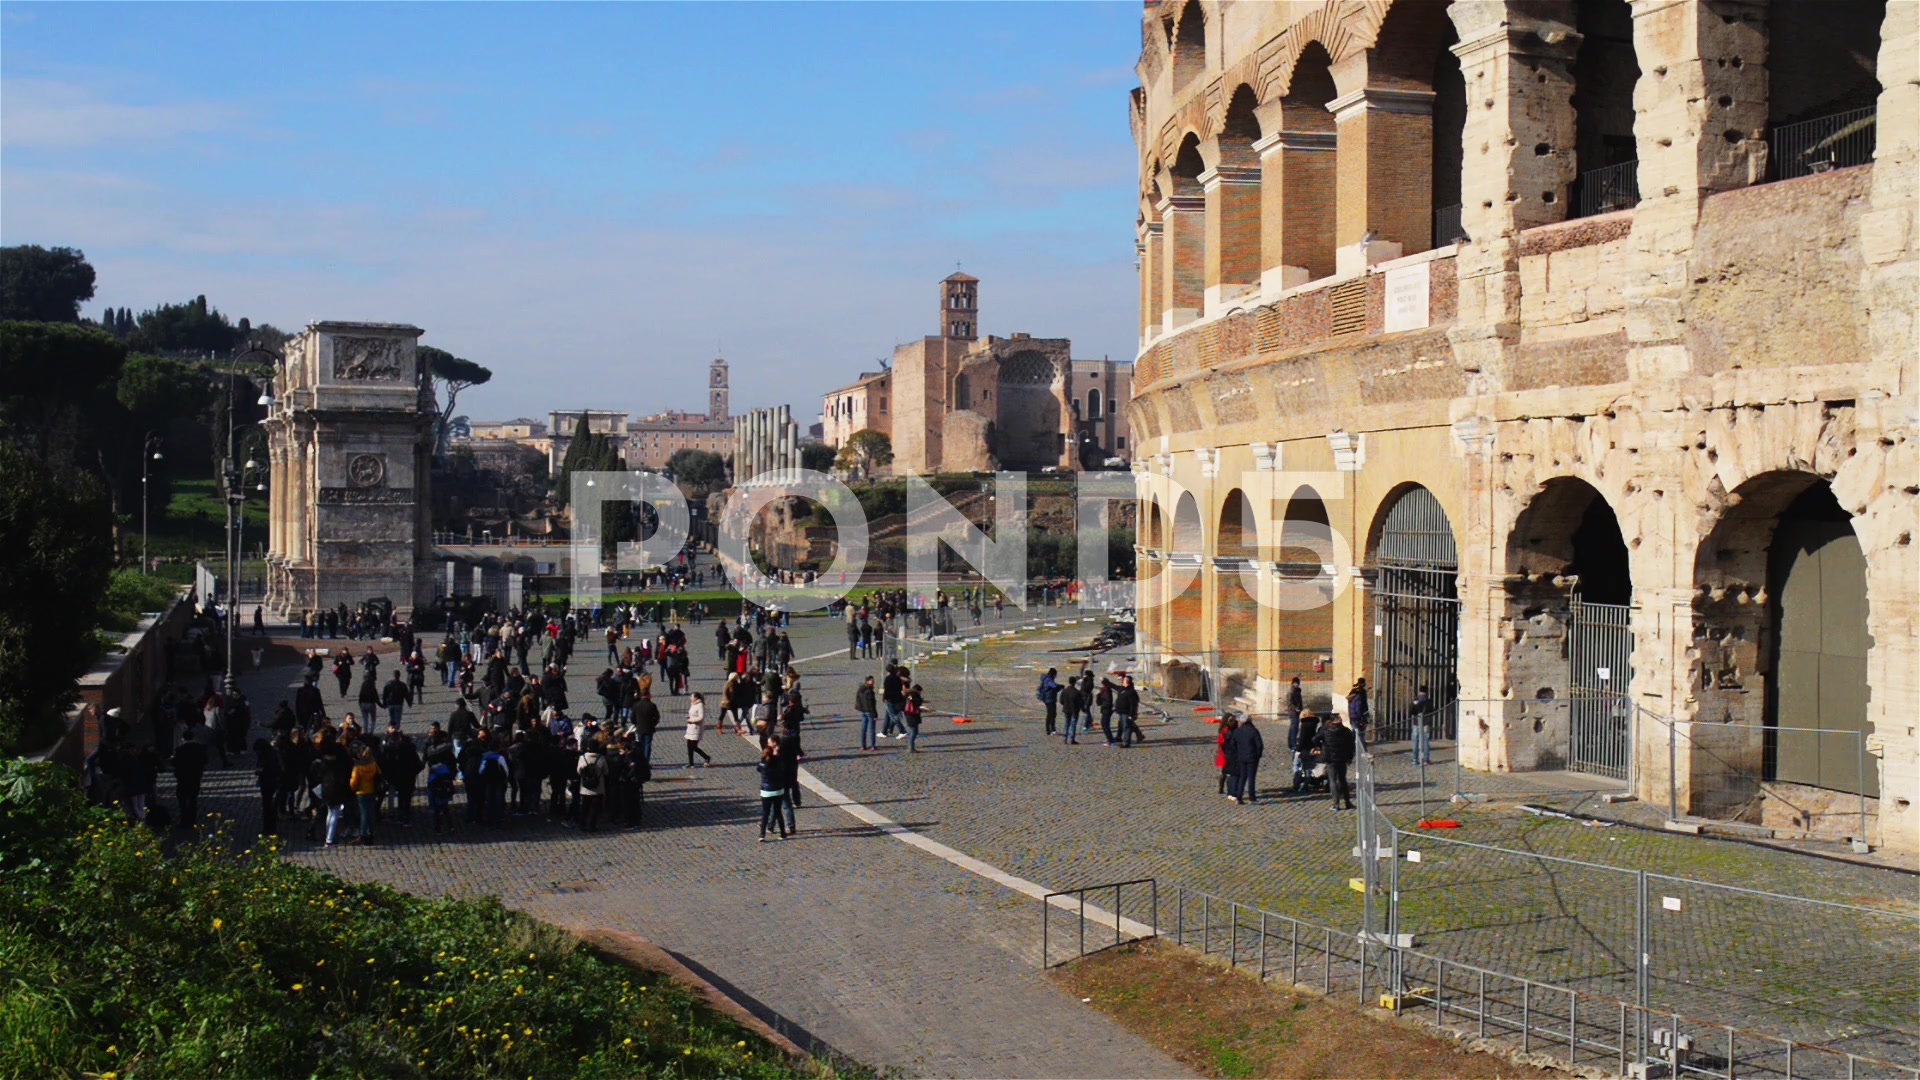 Colosseum or Flavian Amphitheatre in Rome, Italy ~ Footage #63049628